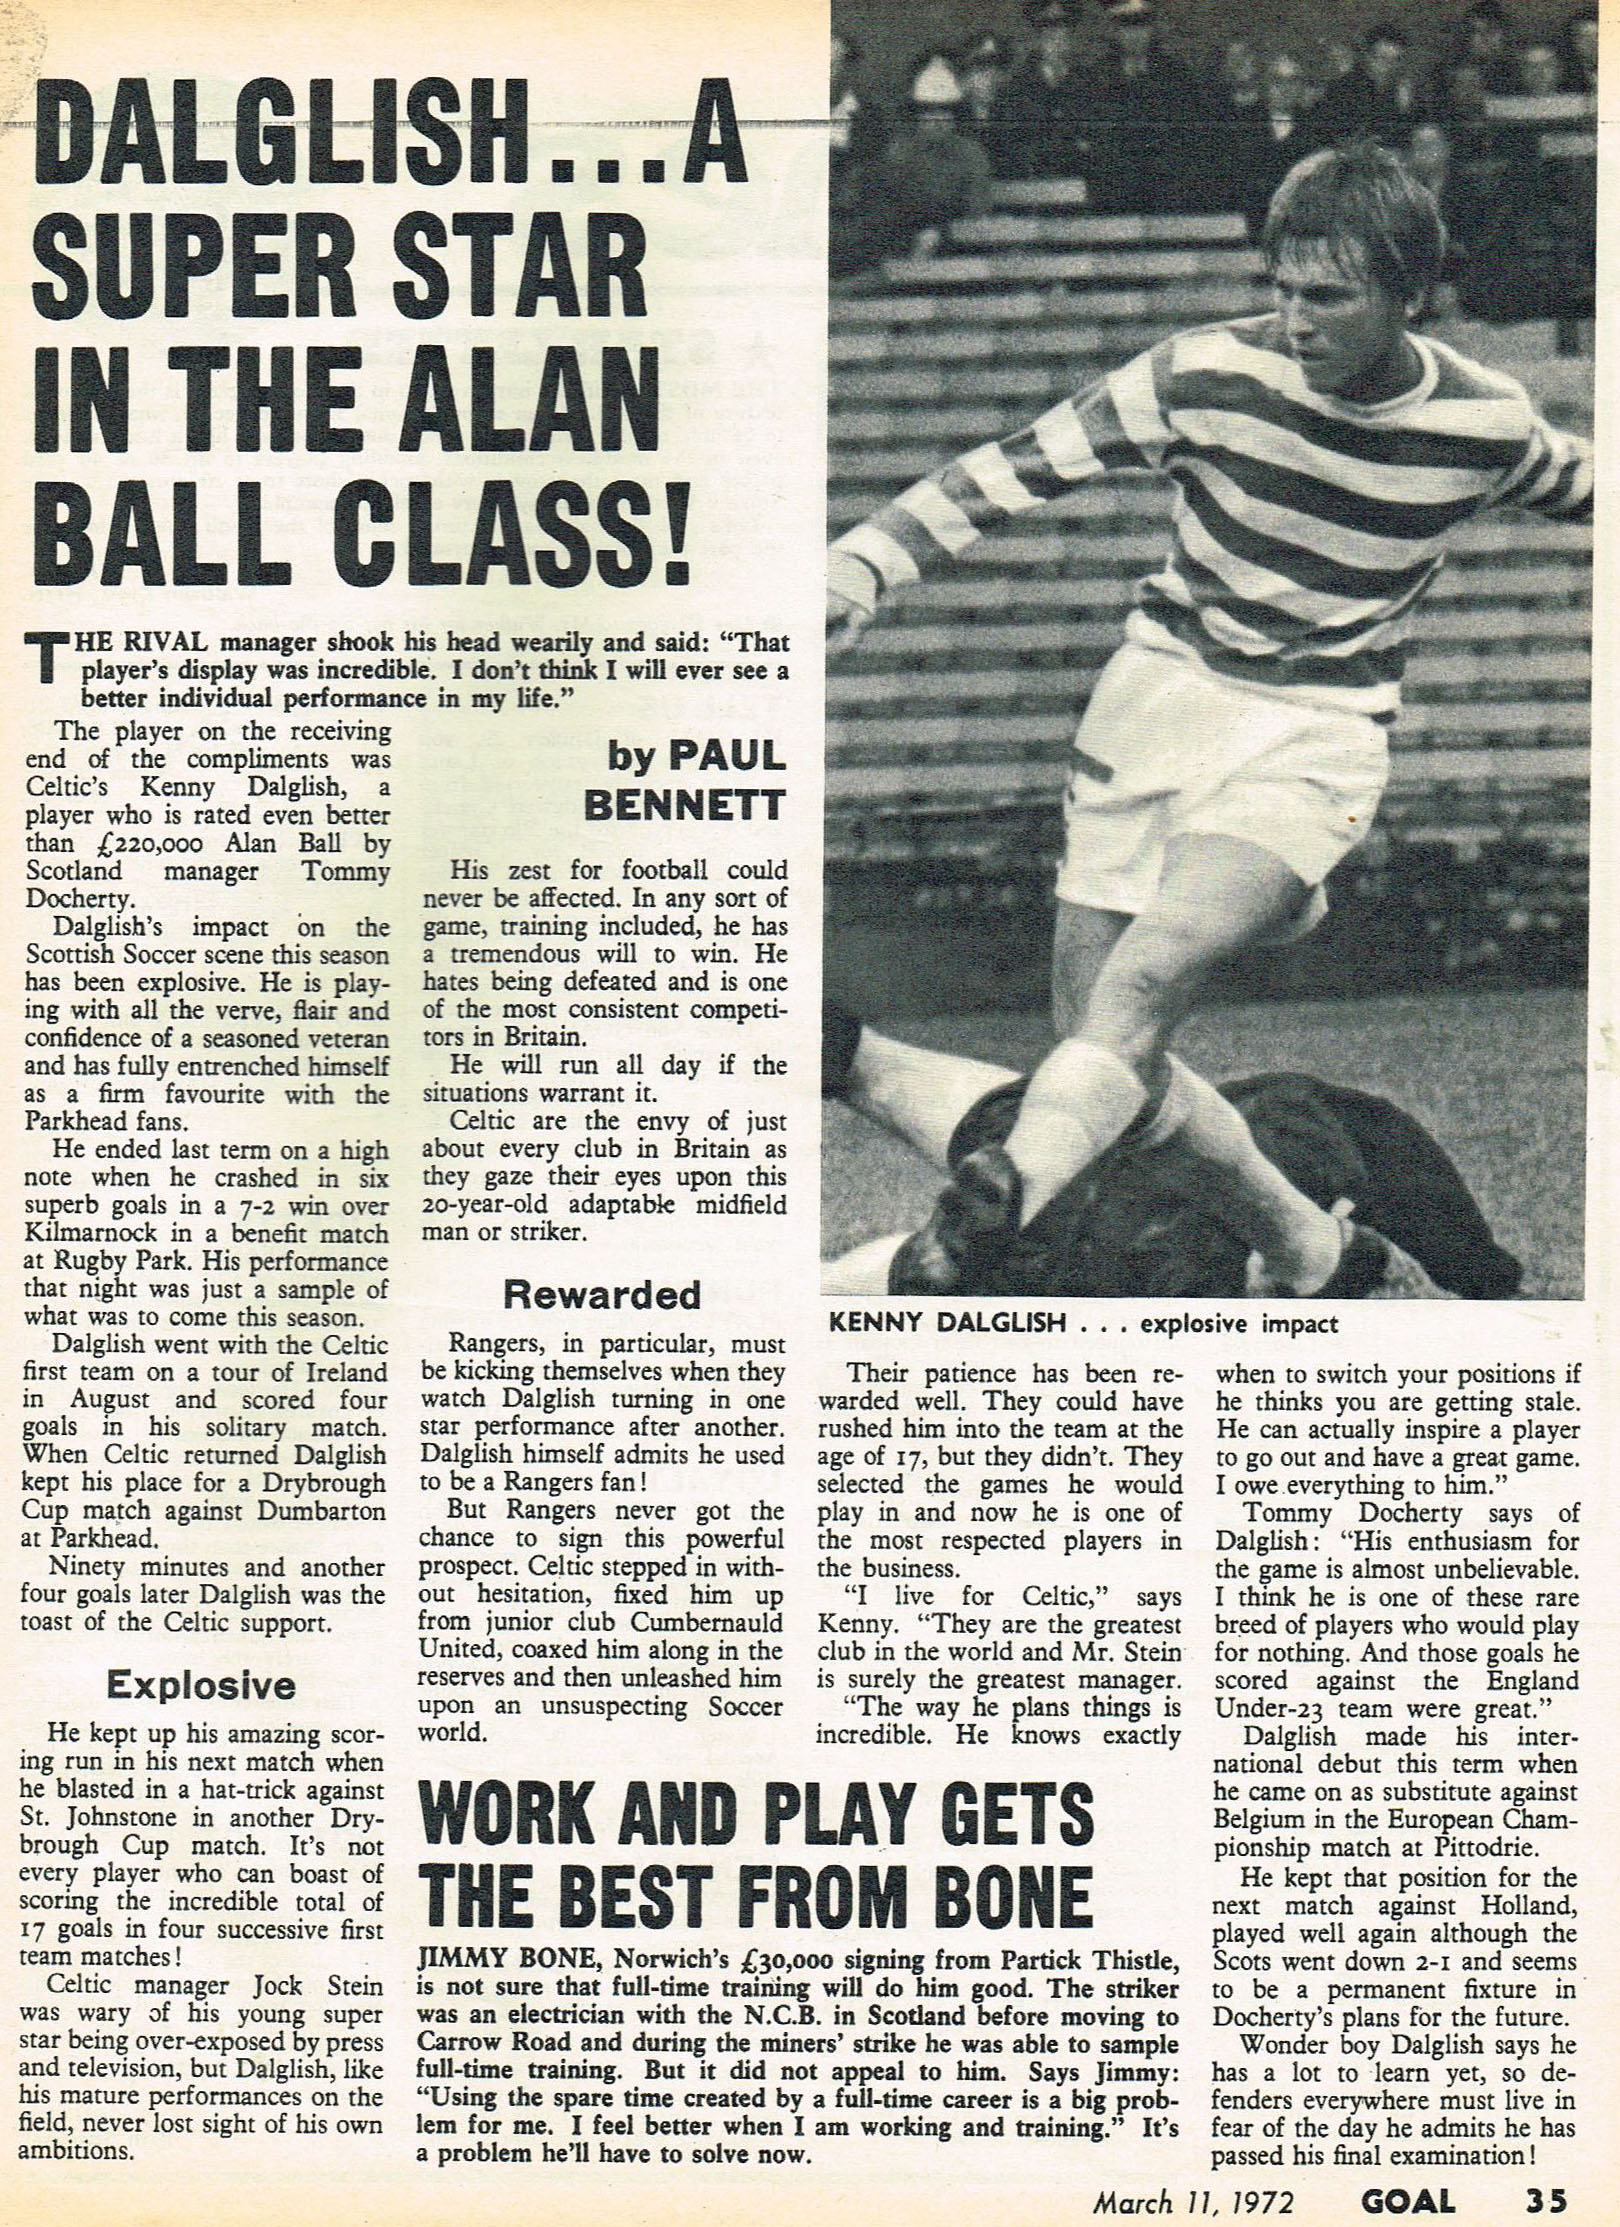 A superstar in the Alan Ball class! - 11 March 1972